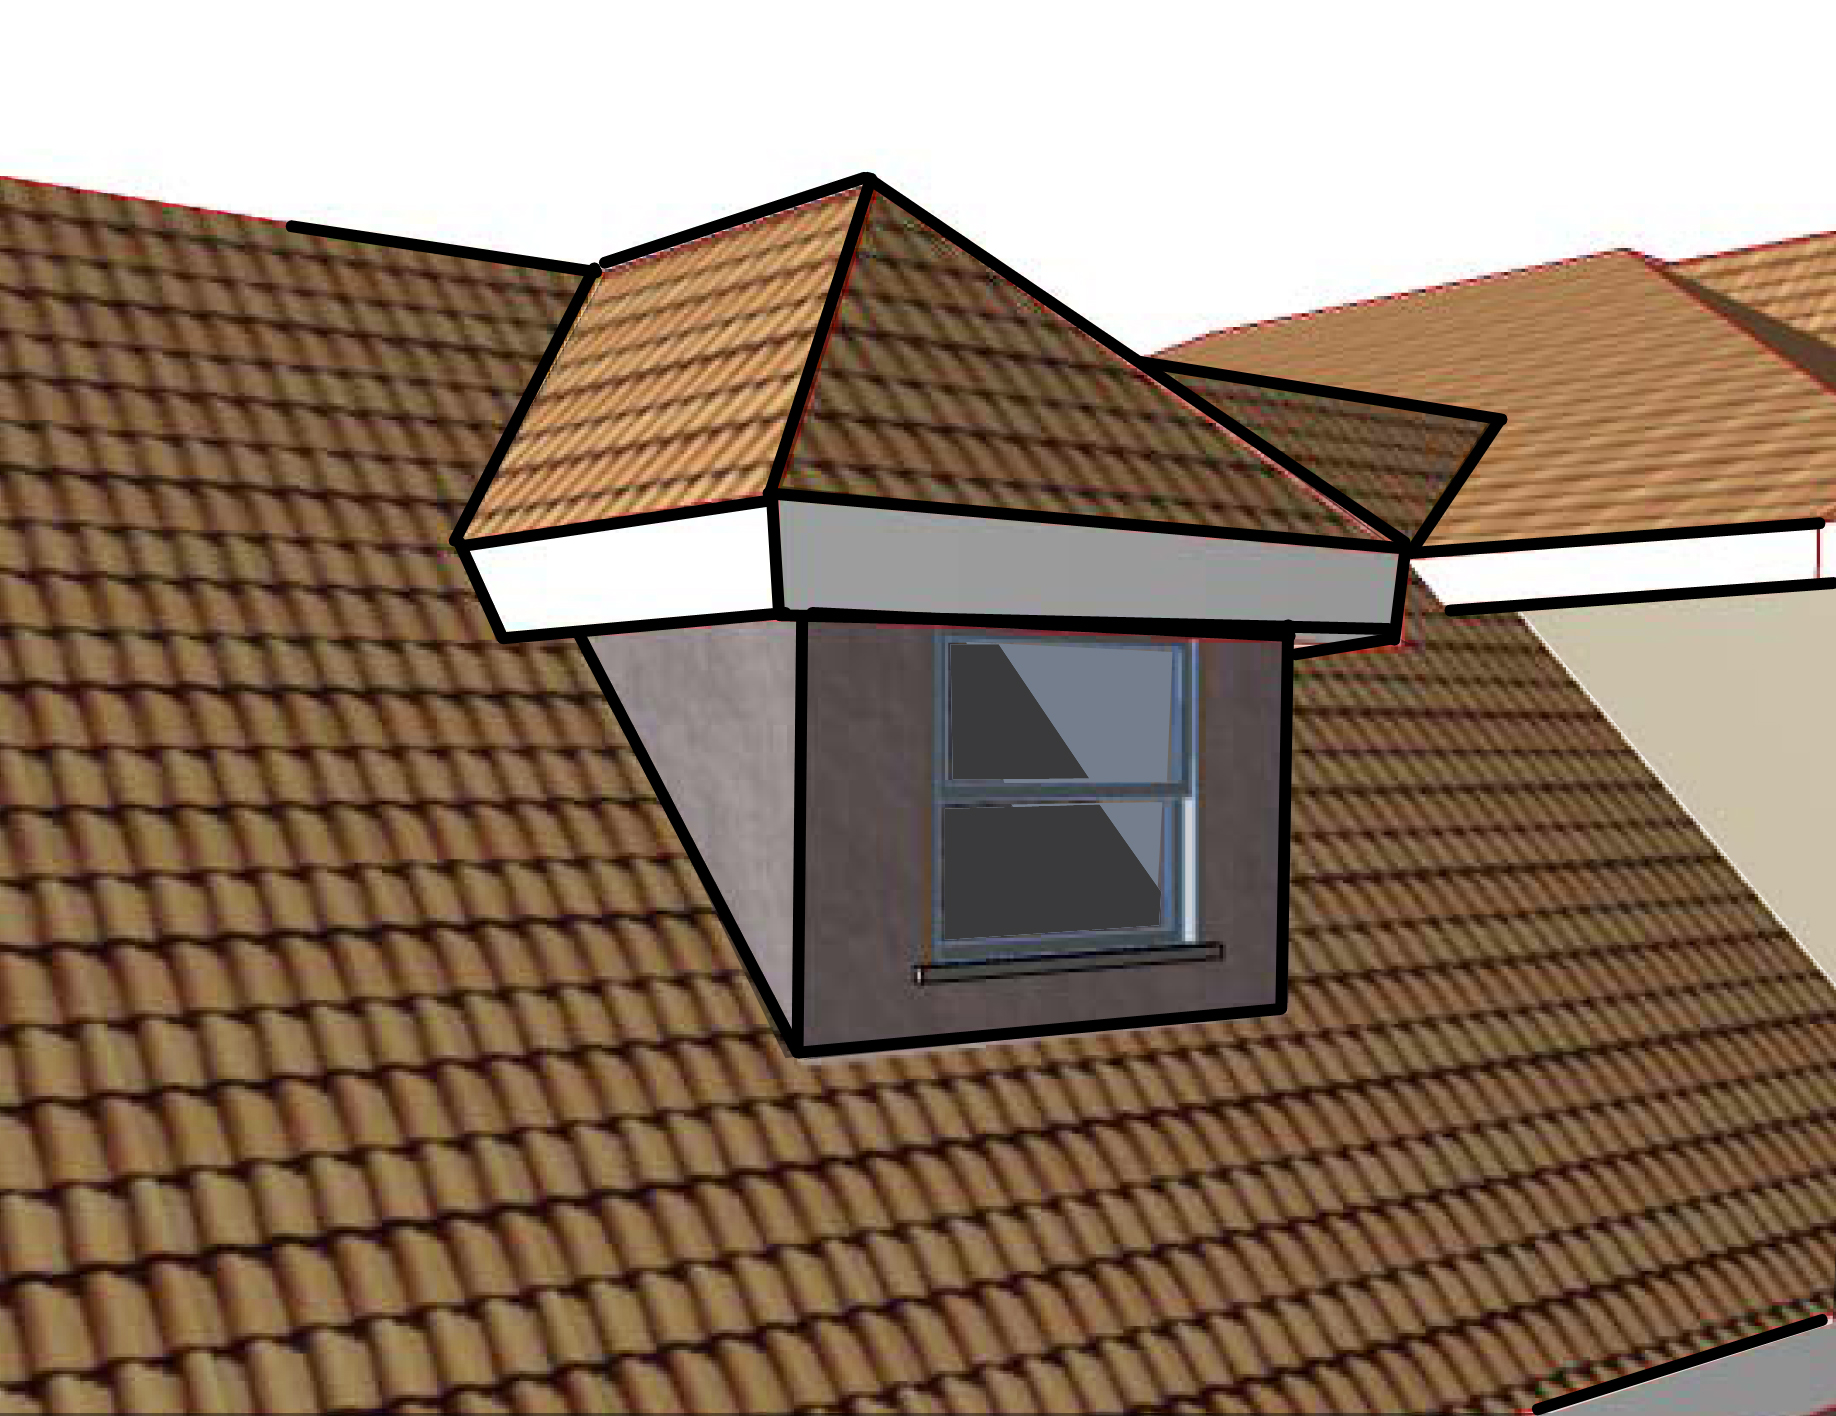 file hip roof wikipedia